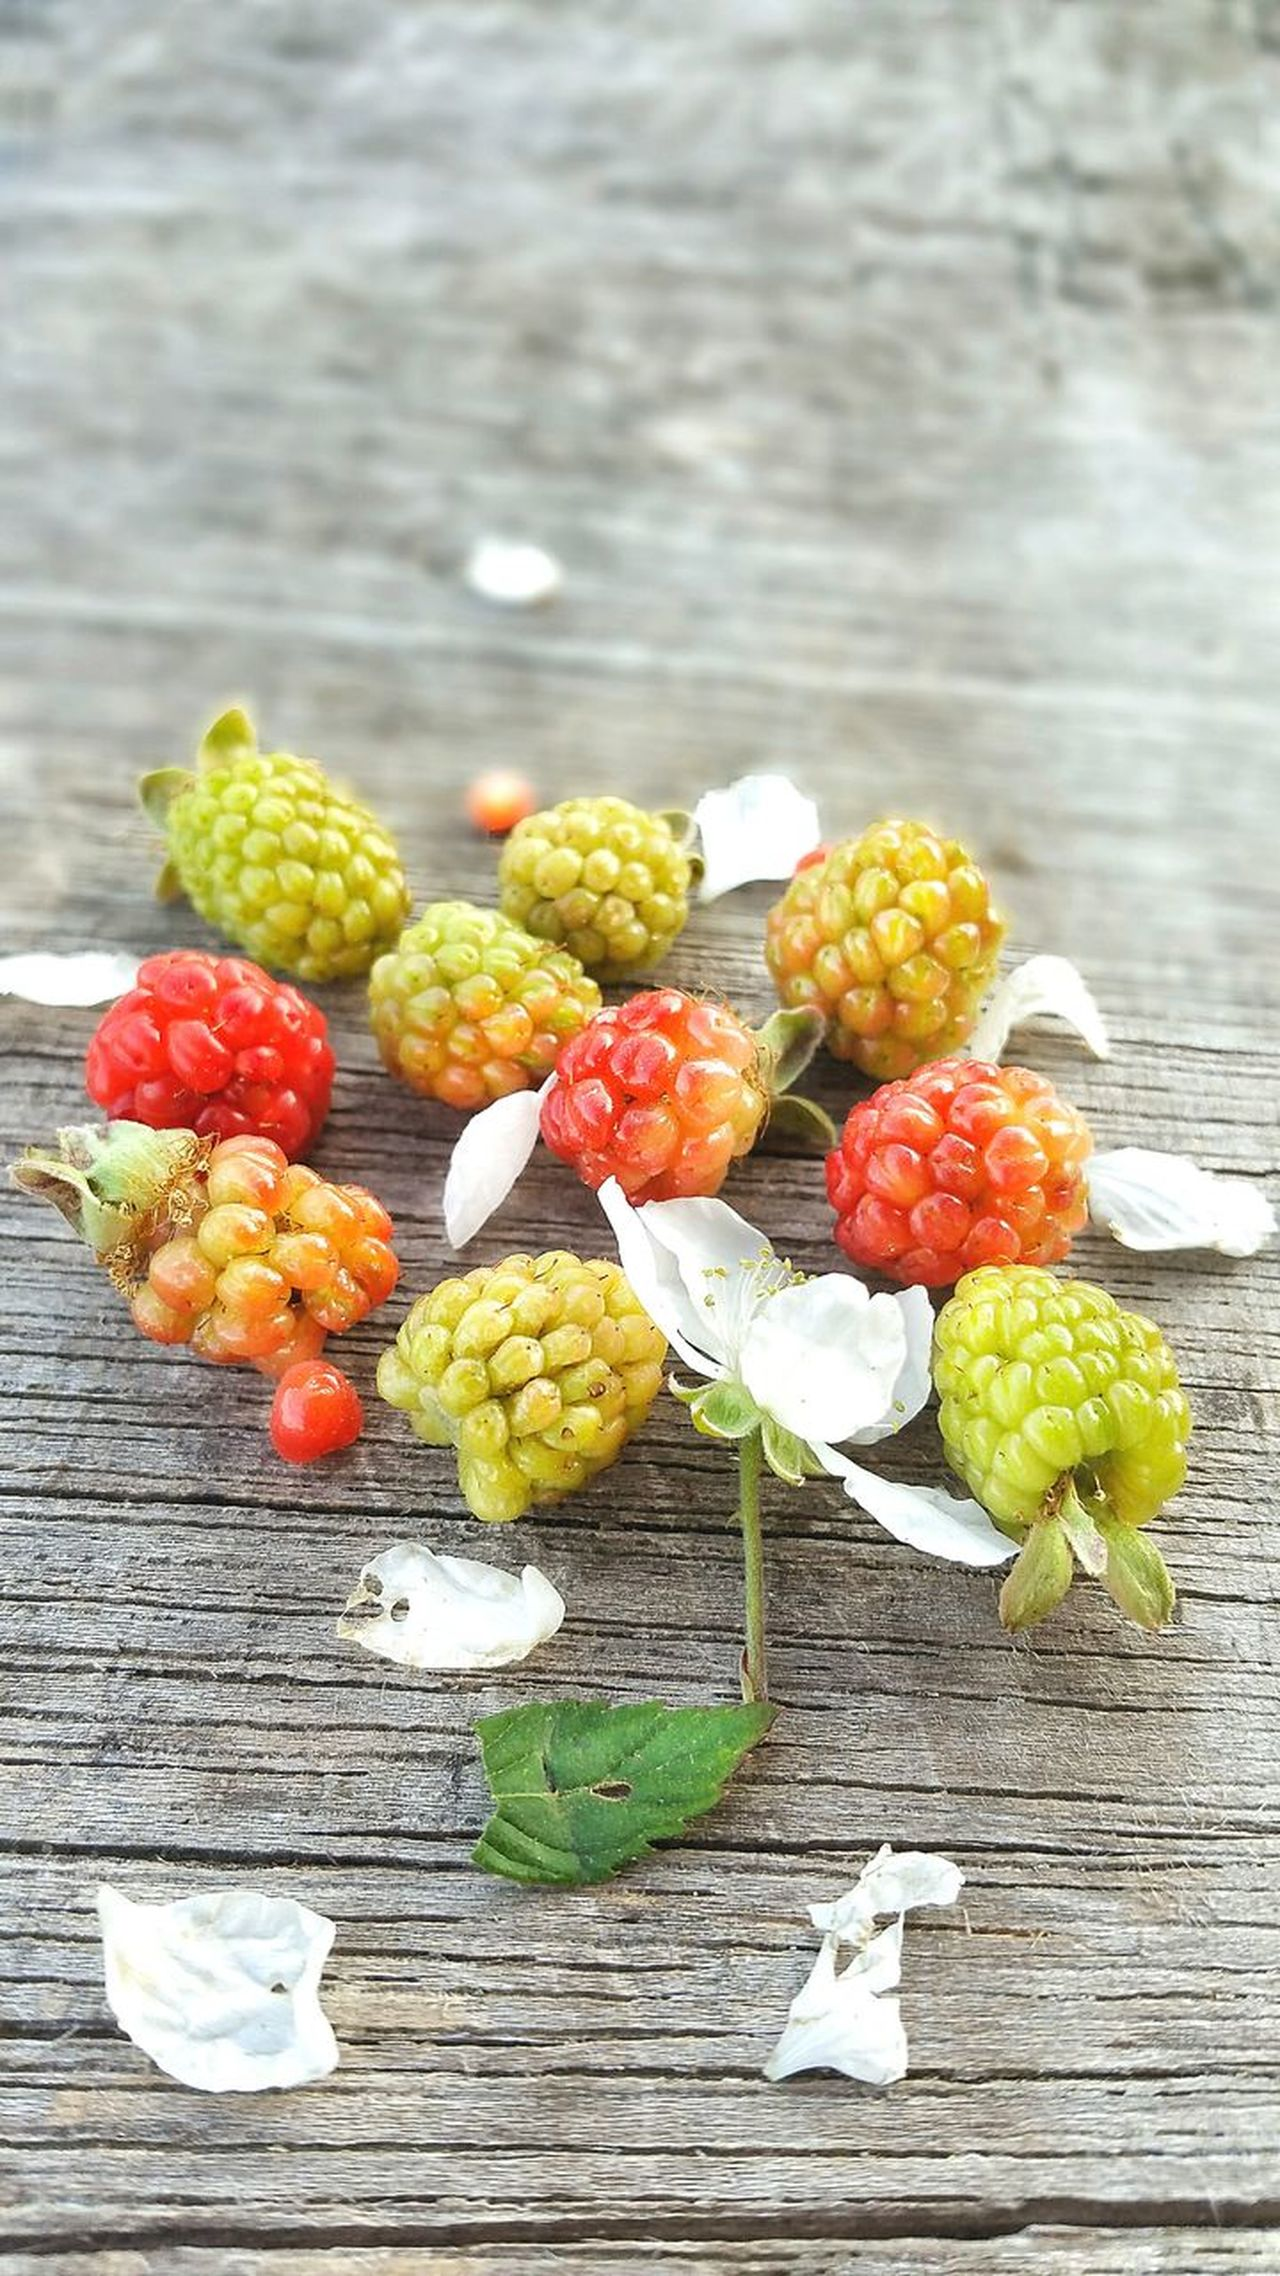 Healthy Eating Freshness No People Variation Fruit Food Food And Drink Close-up Multi Colored Outdoors Ready-to-eat Nature Day Wild Wild Berries Dew Berries Blackberry Wild Blackberries Group Bunch Unripe Weathered Wood Backgrounds Room For Text Room For Copy Visual Feast